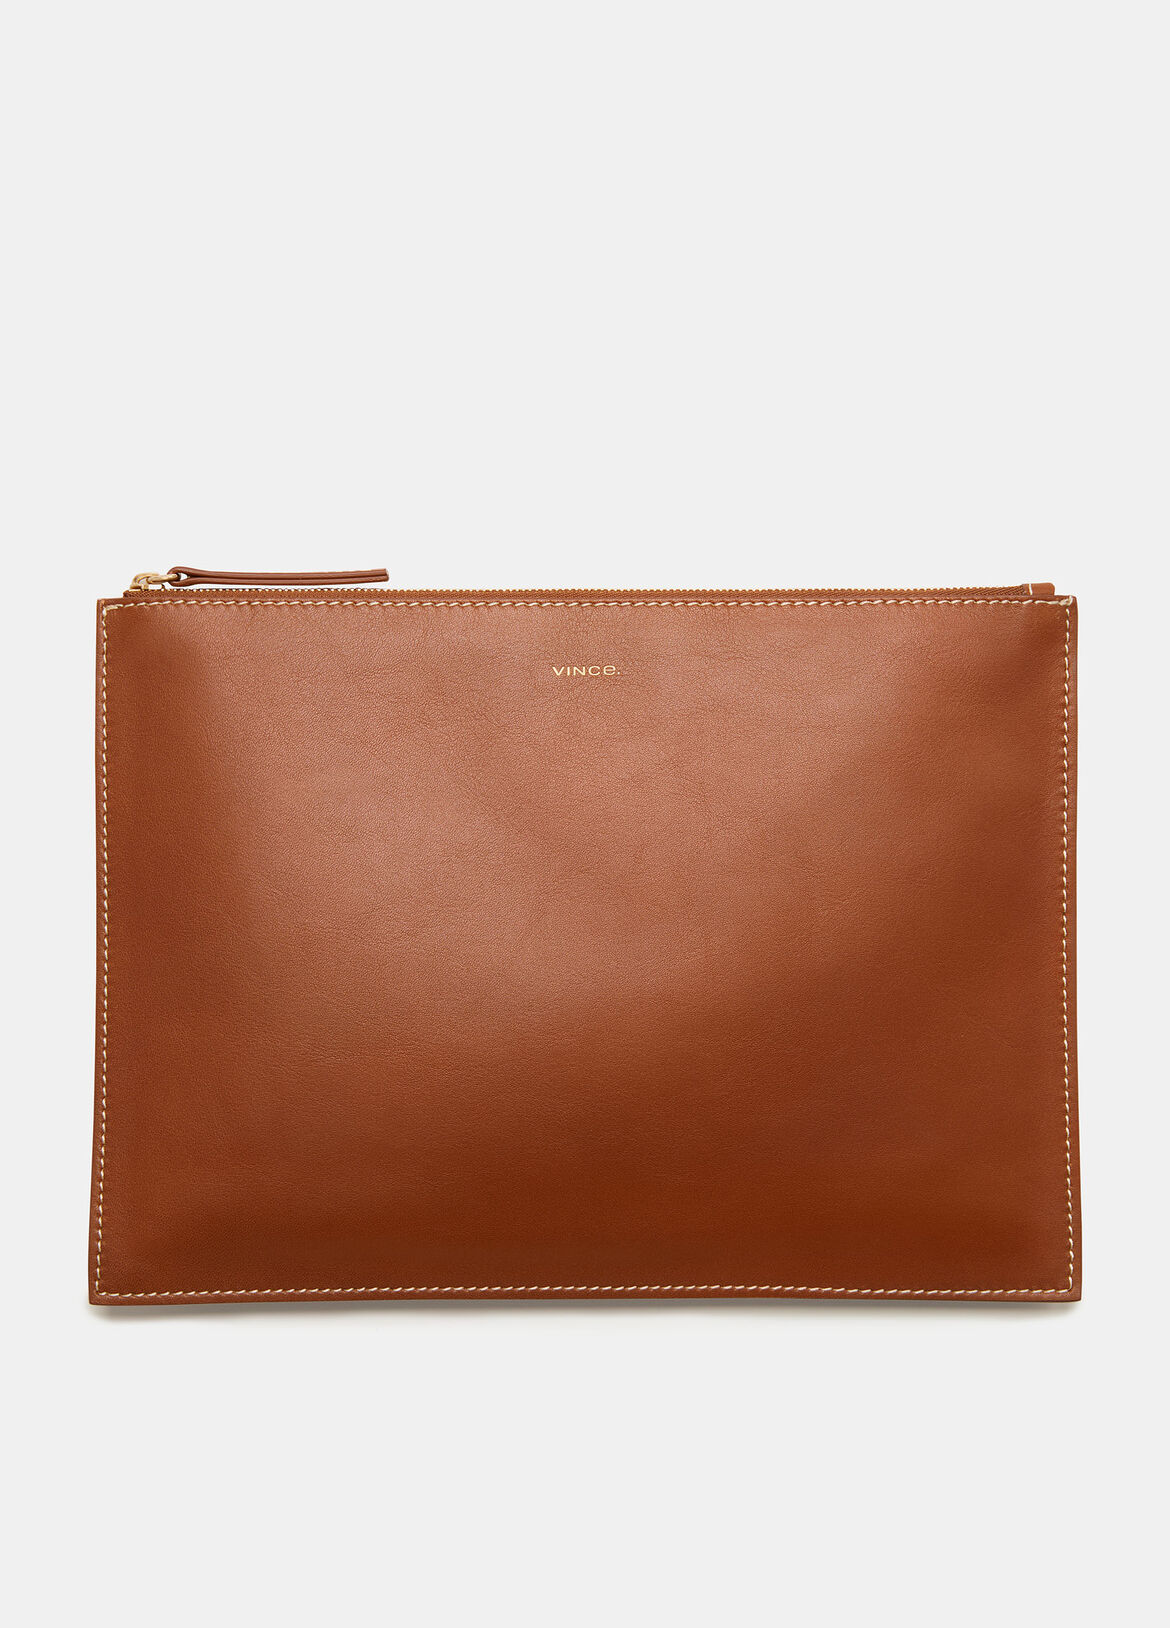 빈스 Vince Exclusive / Palm Large Pouch,SADDLE